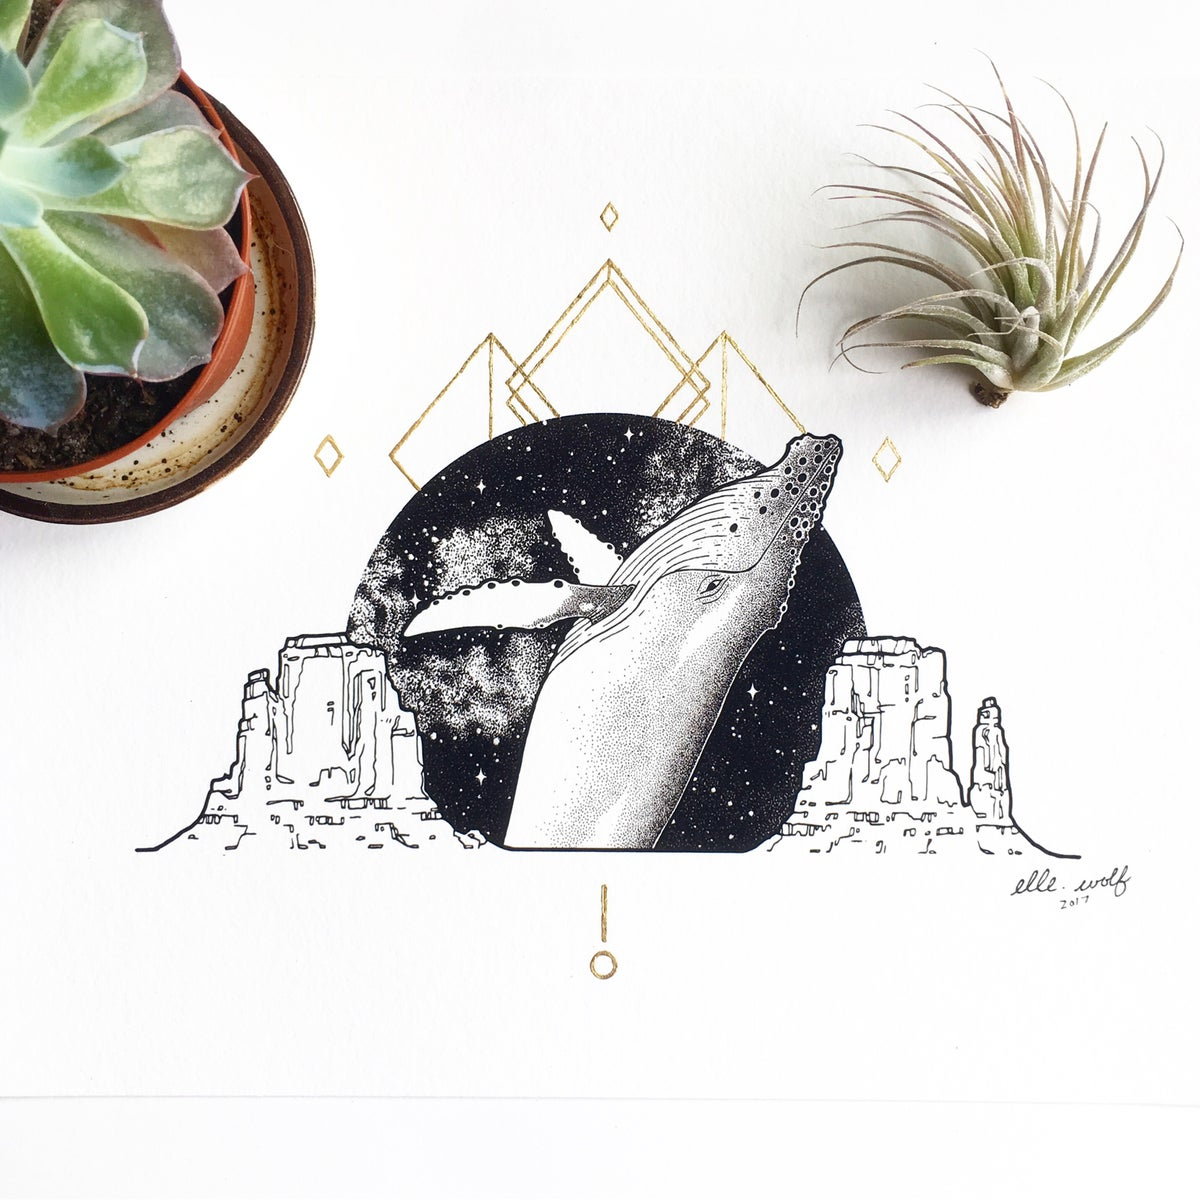 Image of Ancient Oceans: limited edition, gold leaf-embellished print